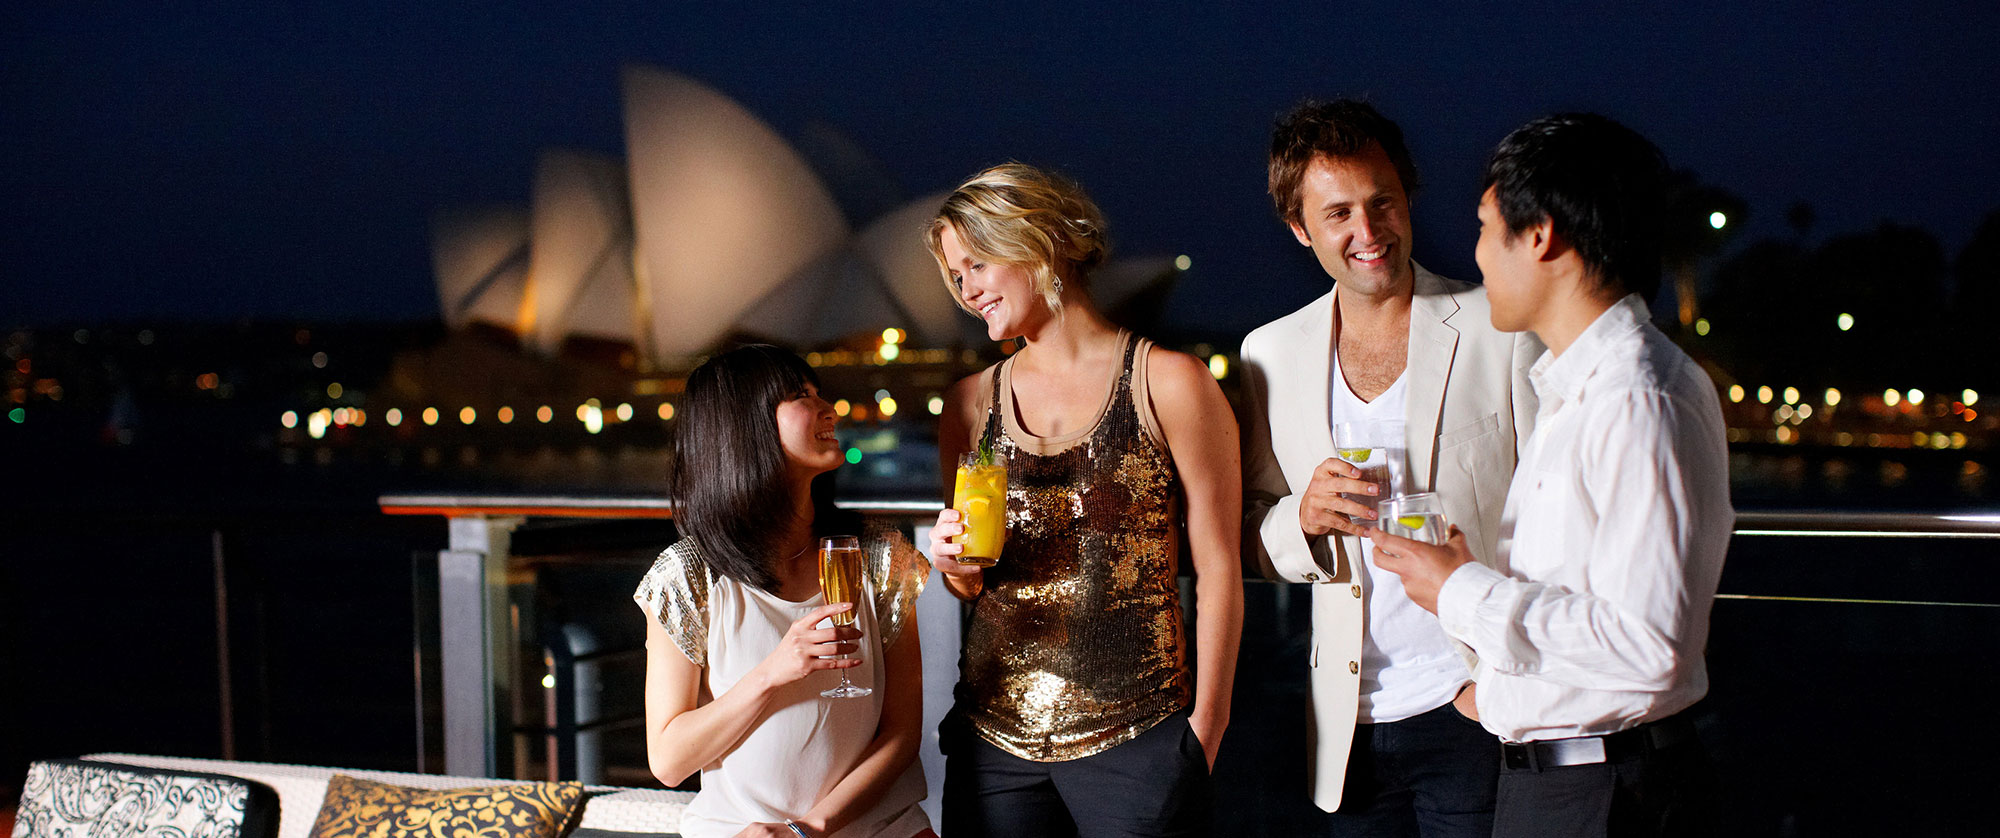 Australia Honeymoons: Epicurean Journey